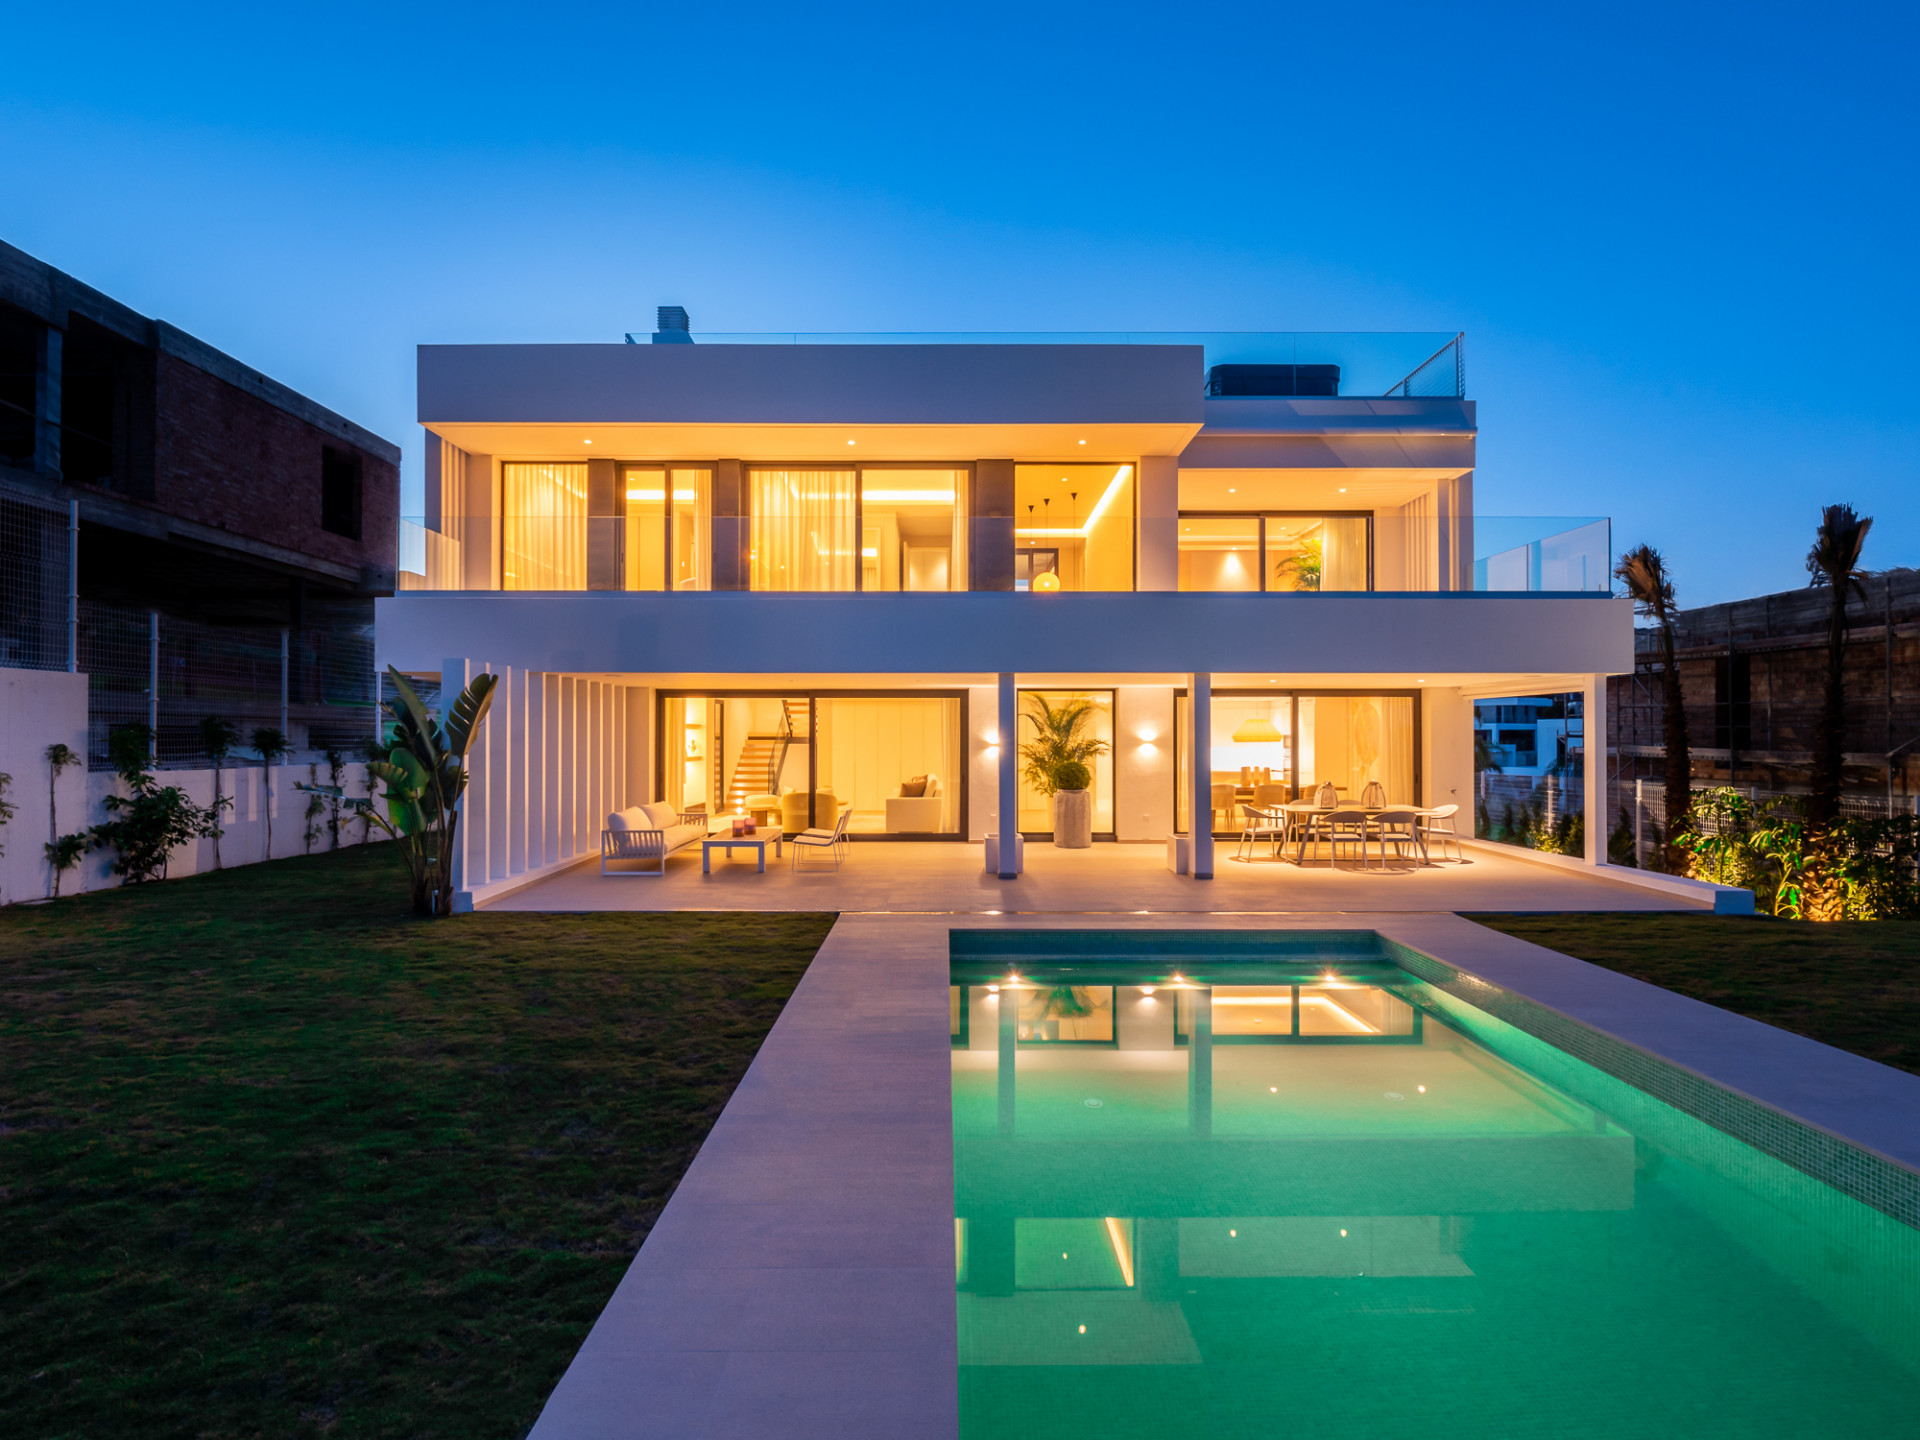 Casa in Antik Villas, Estepona